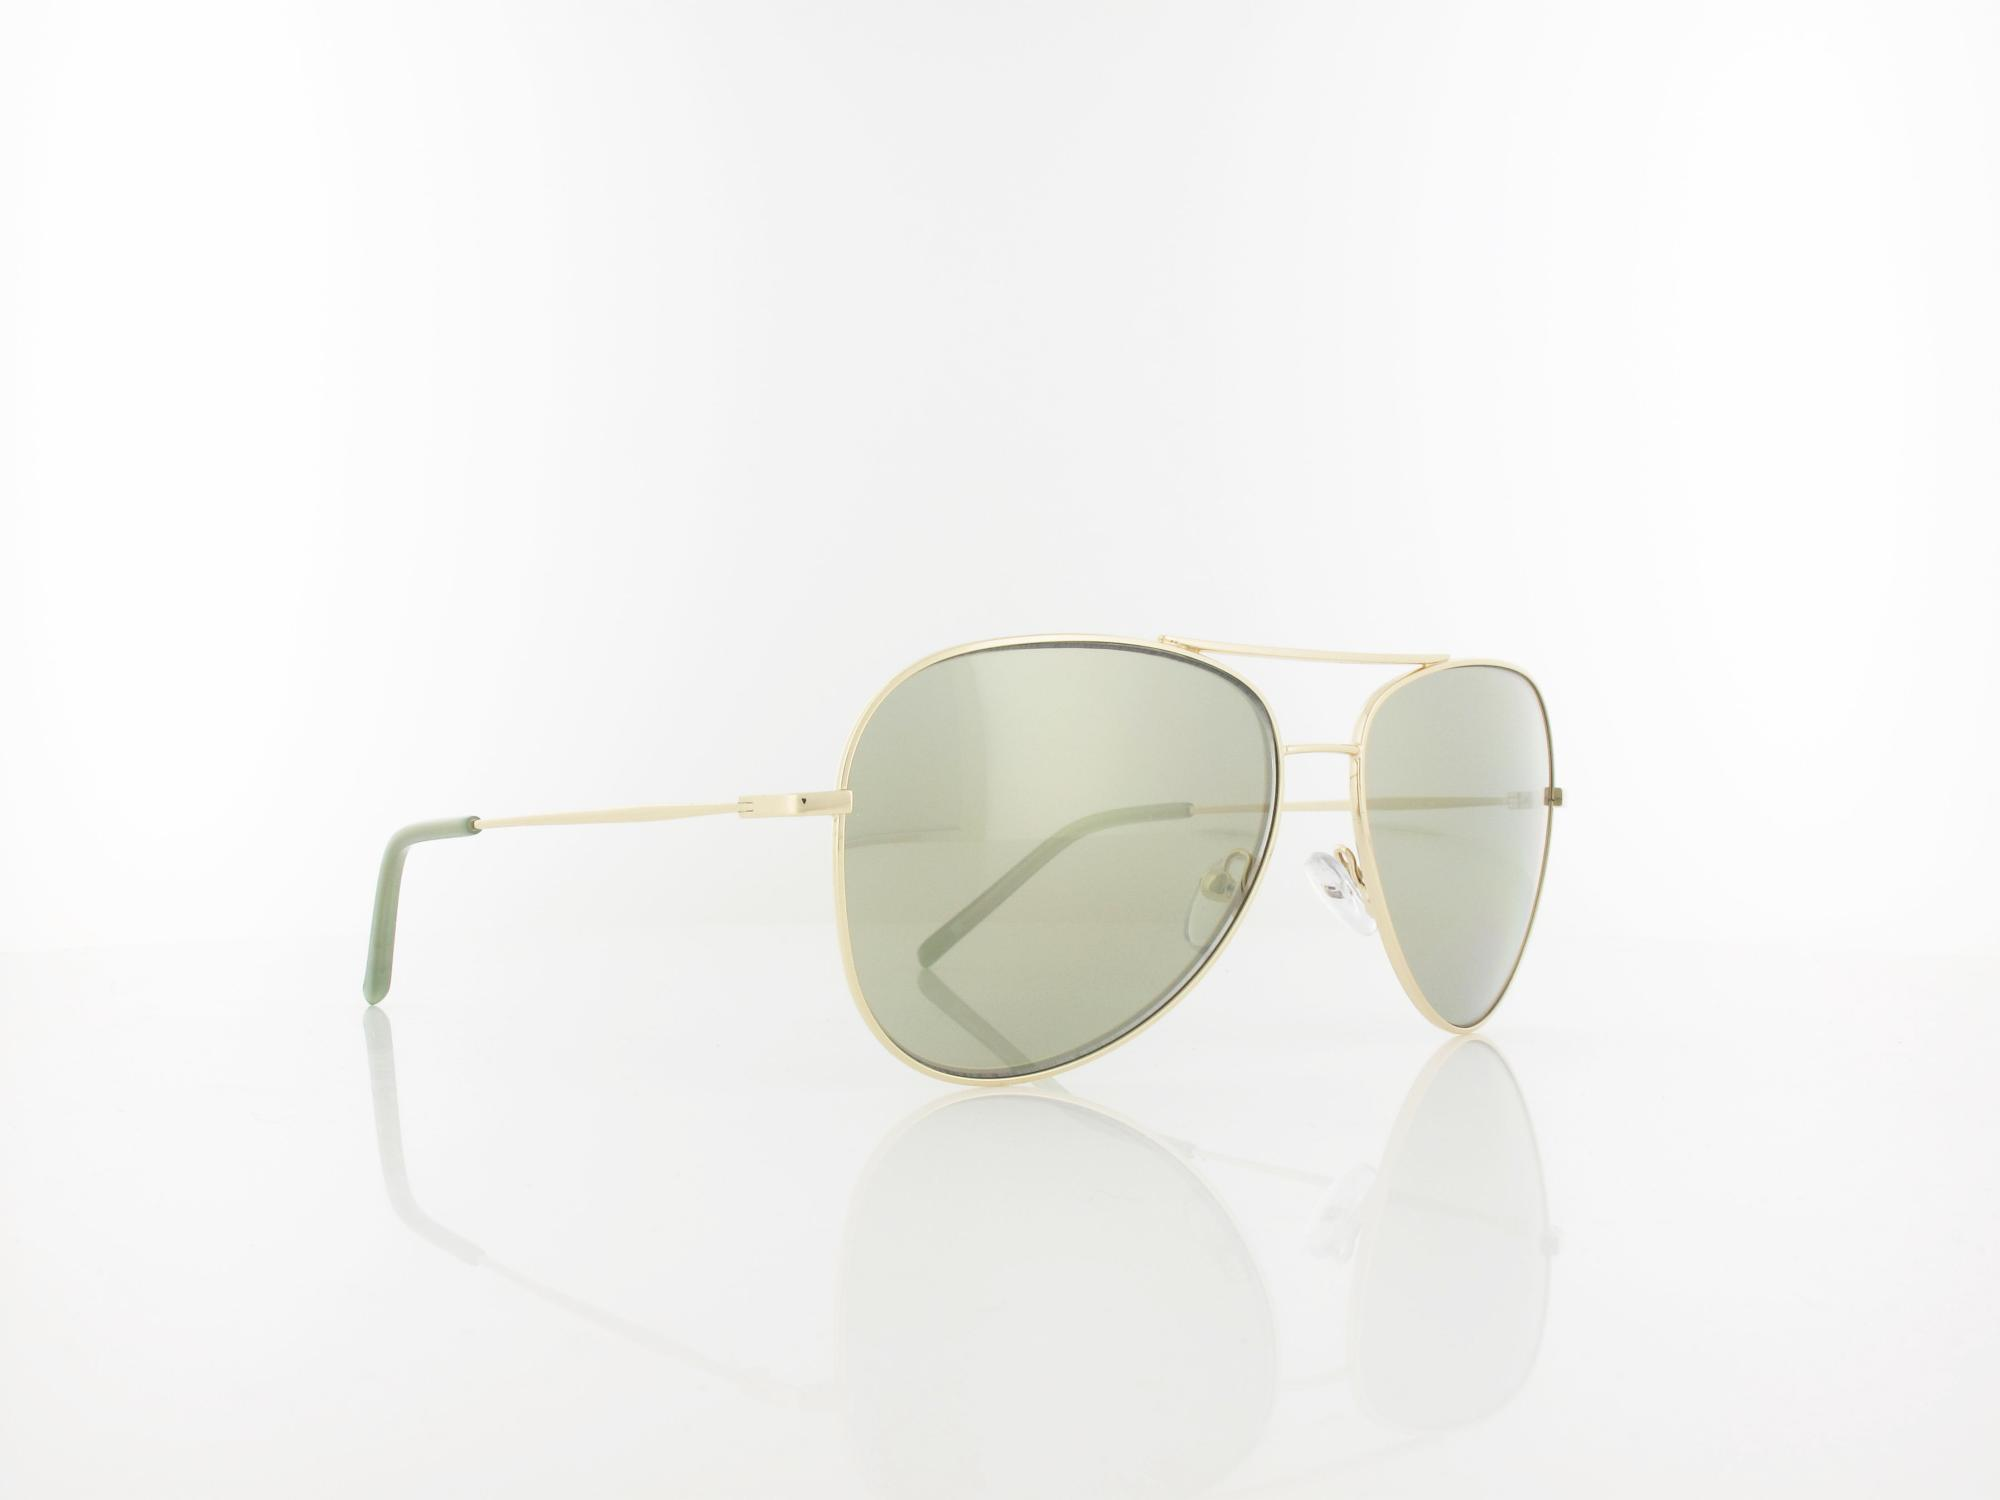 DKNY | DK102S 718 58 | gold with sage flash / grey silver mirror